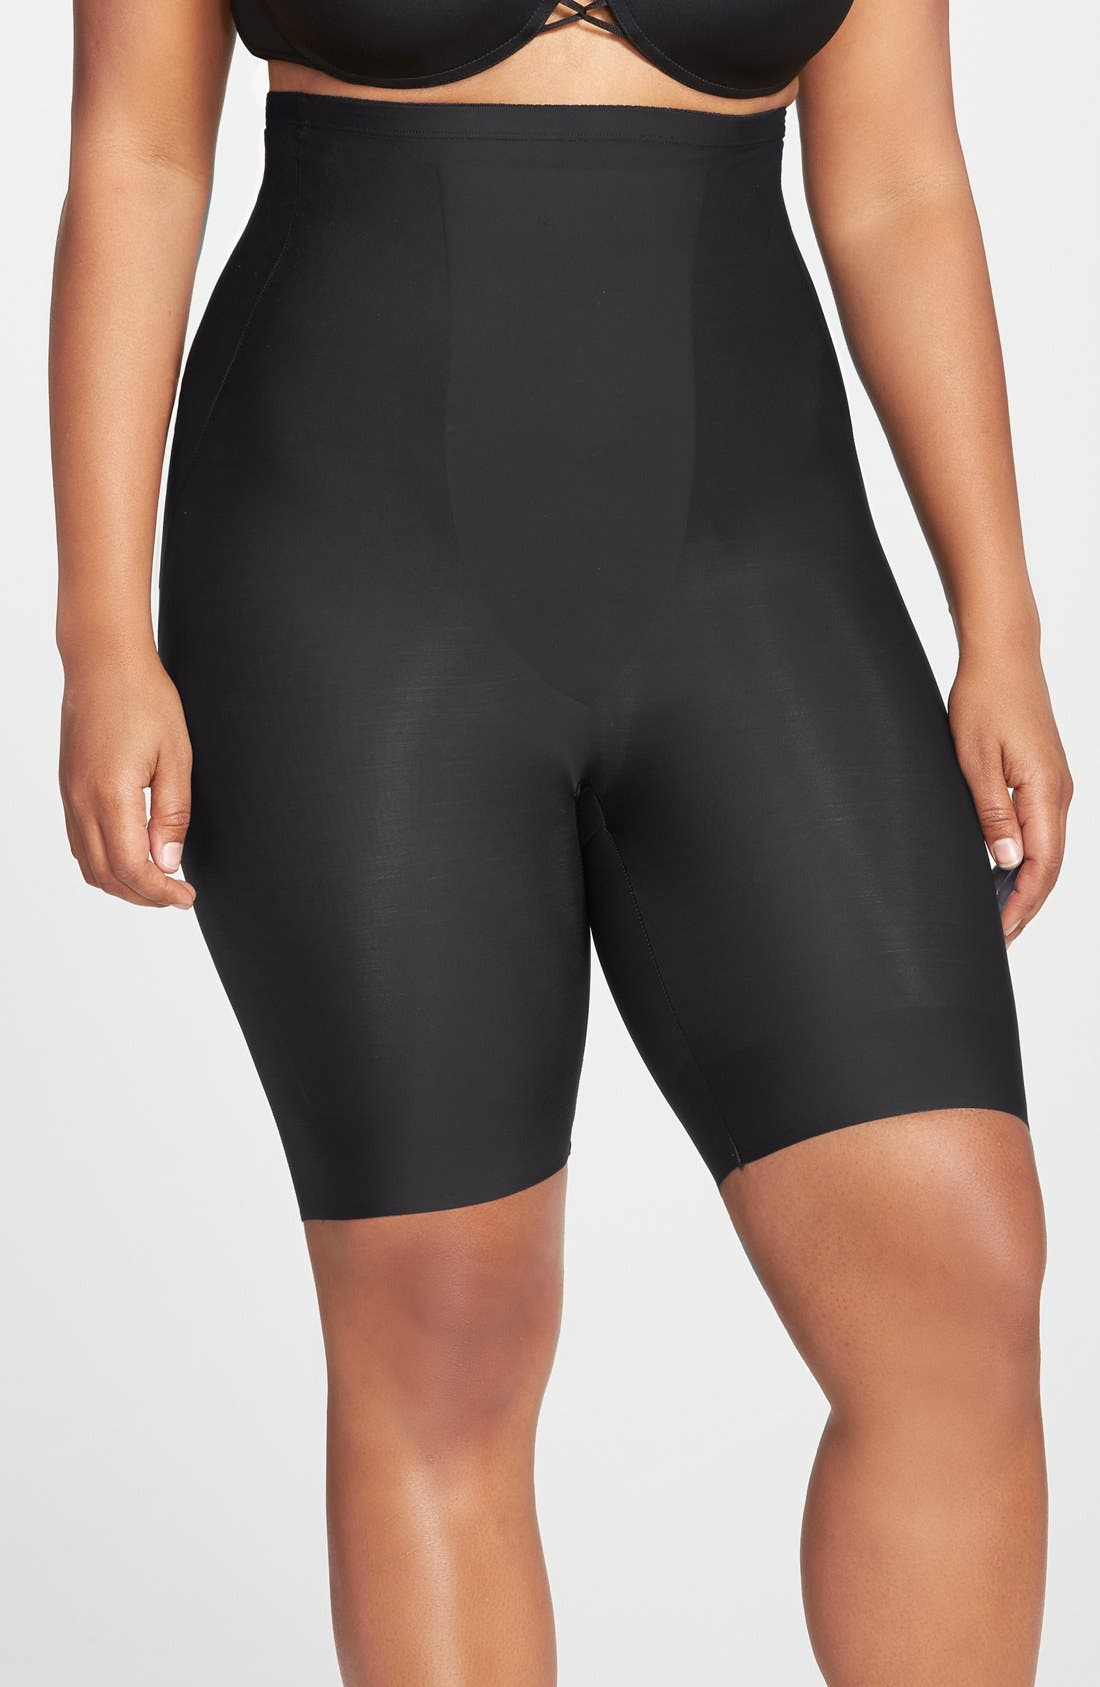 Main Image - TC Shaping High Waist Thigh Slimmer (Plus Size) (Online Only)